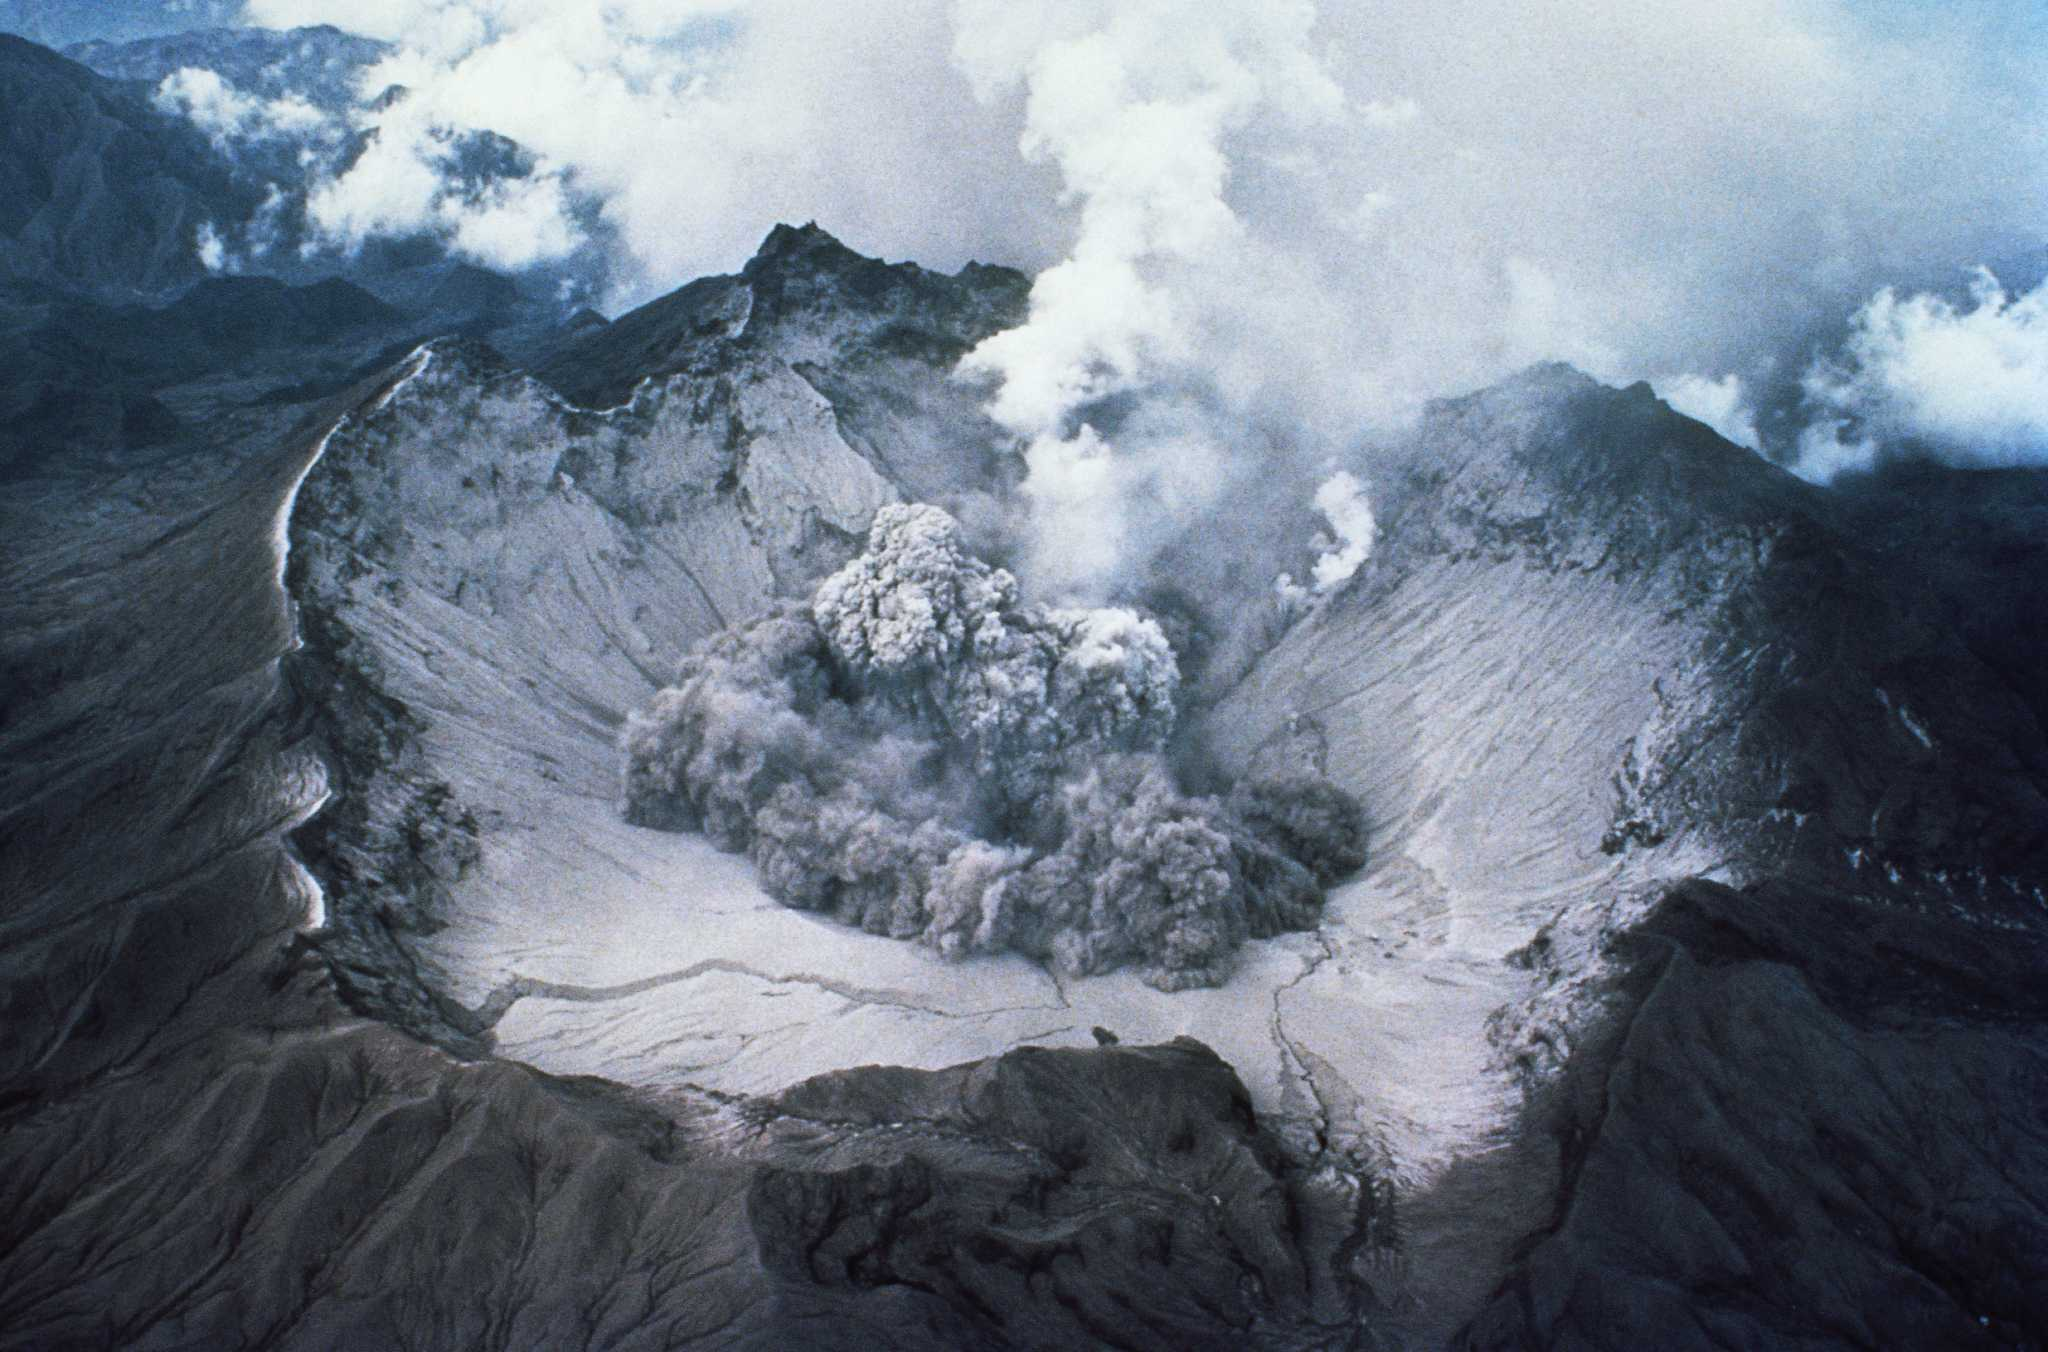 39 years ago: Mount St. Helens woke up and blew her top